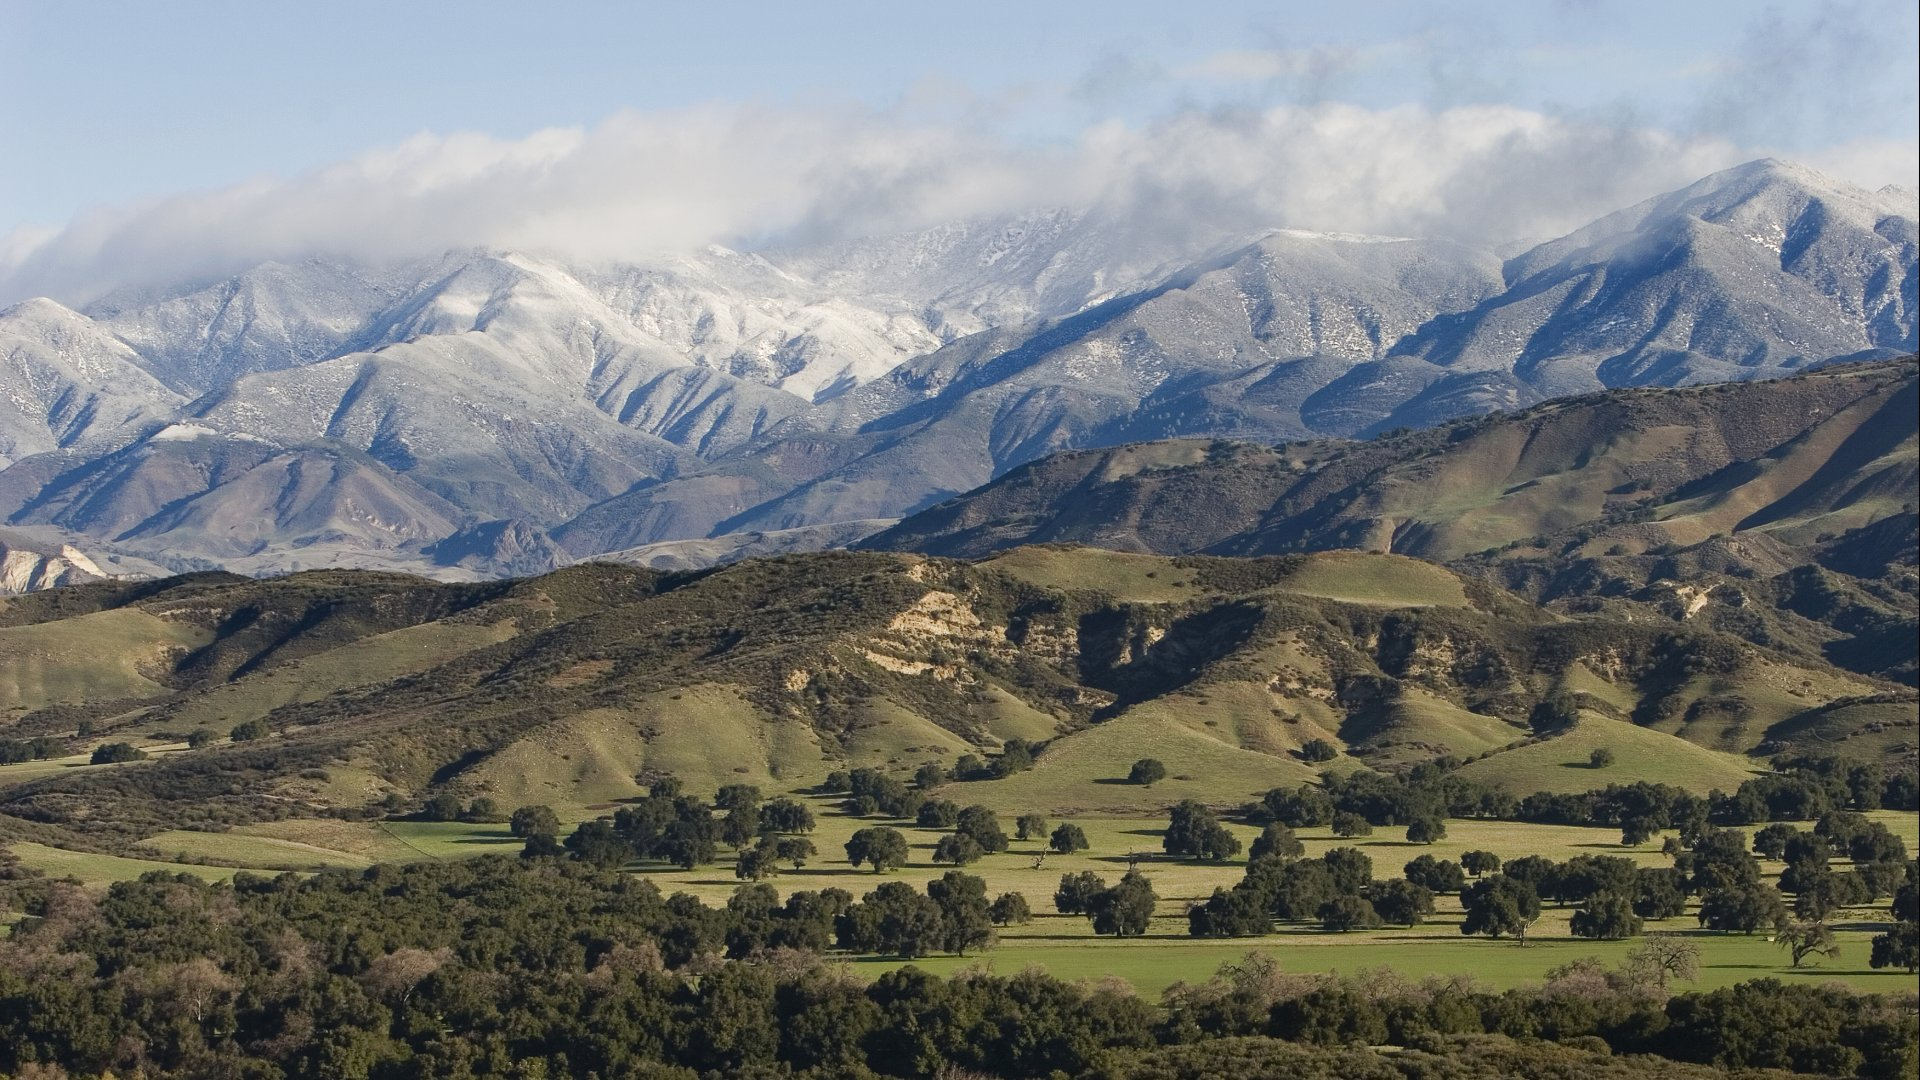 Located in the Santa Ynez Valley